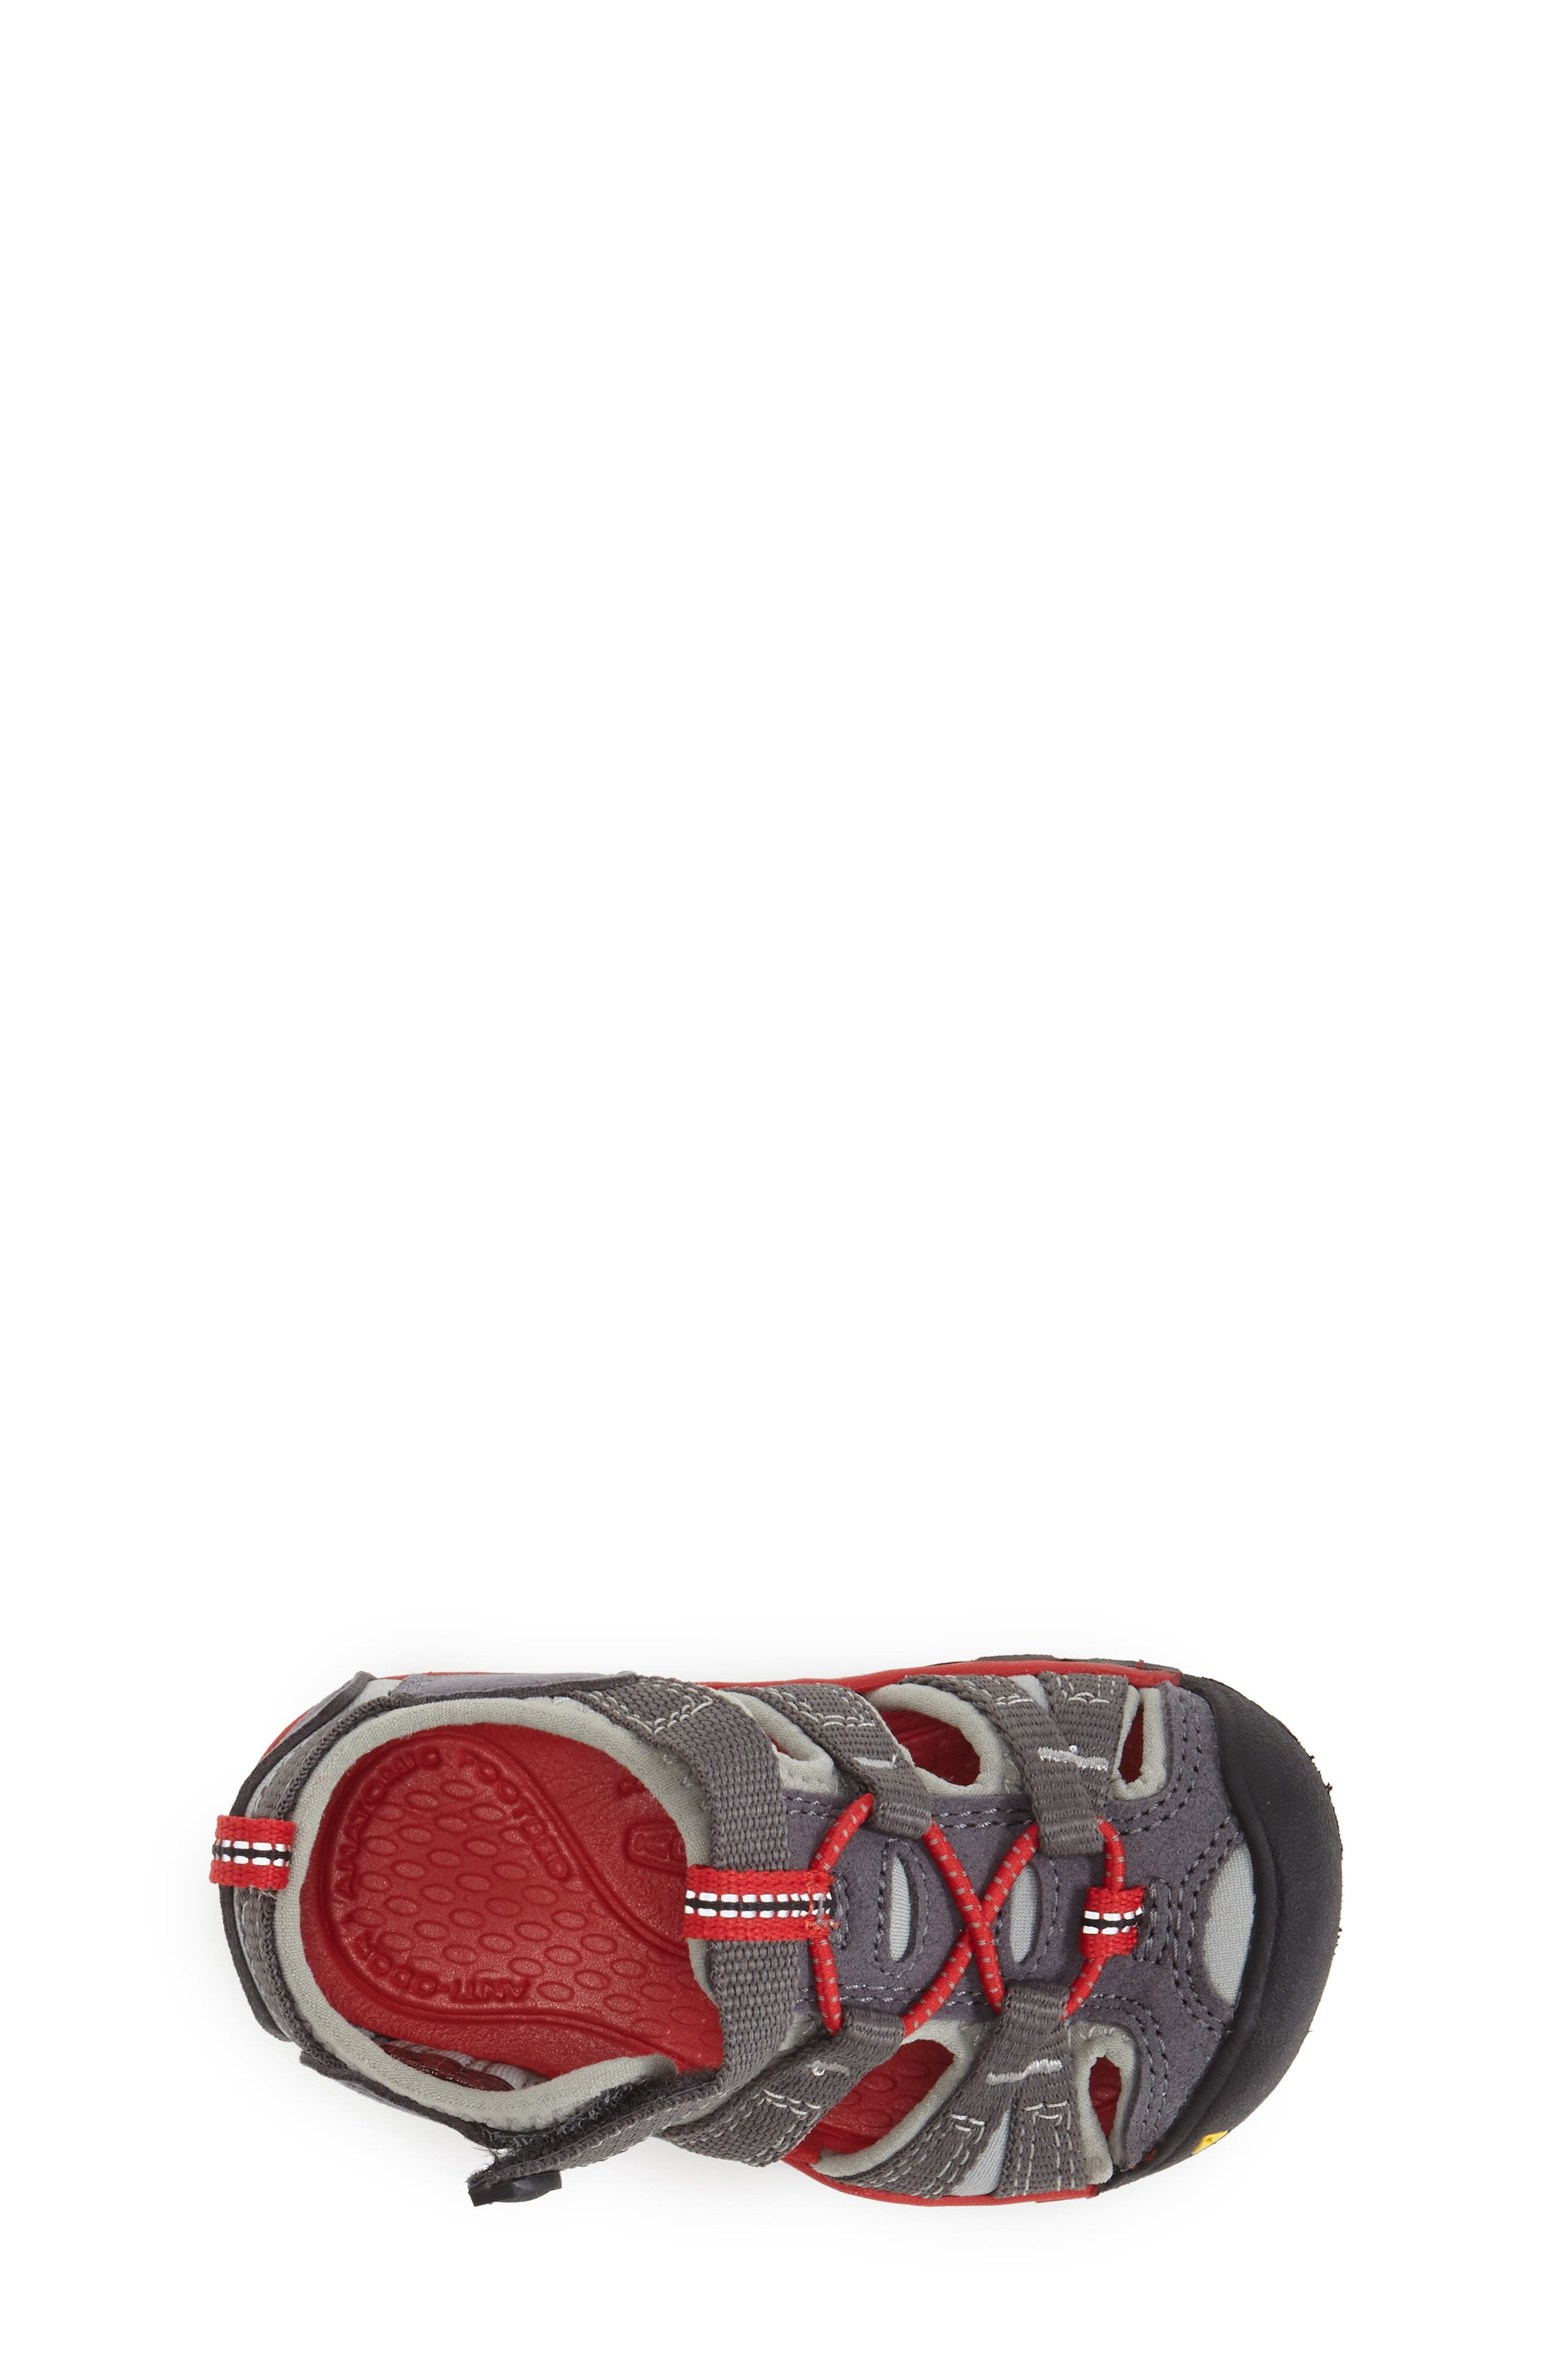 Seacamp II Water Friendly Sandal,                             Alternate thumbnail 3, color,                             Magnet/ Racing Red